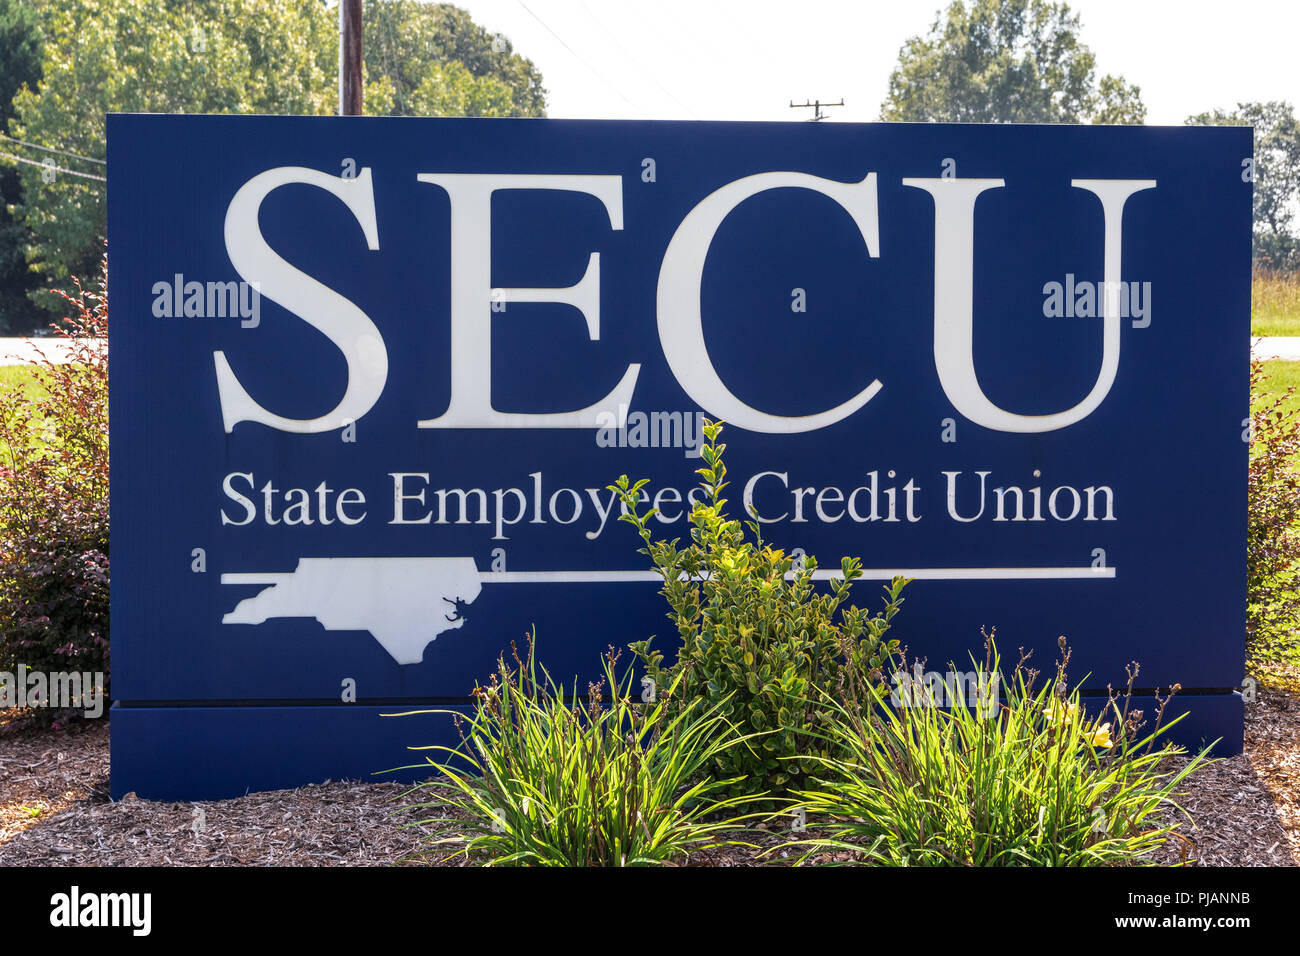 HICKORY, NC, USA-9/2/18: A  street sign at a branch of the North Carolina State Employees' Credit Union. - Stock Image